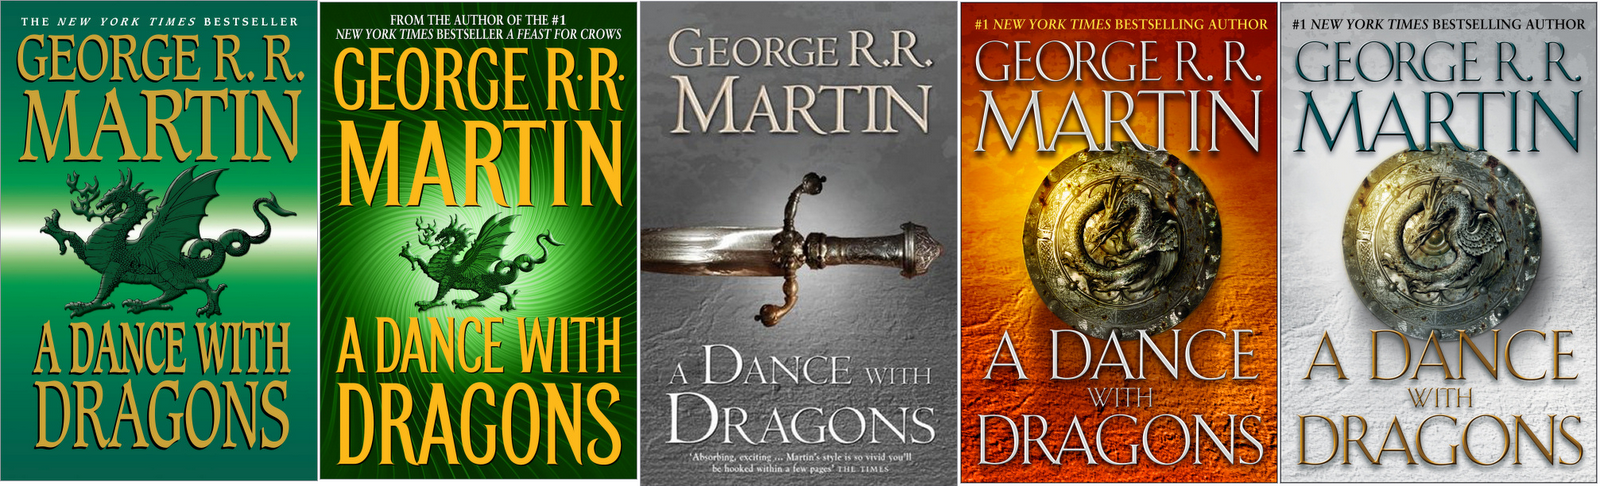 a Fantasy Reader: A Dance with Dragons review A Dance With Dragons Audiobook Cover